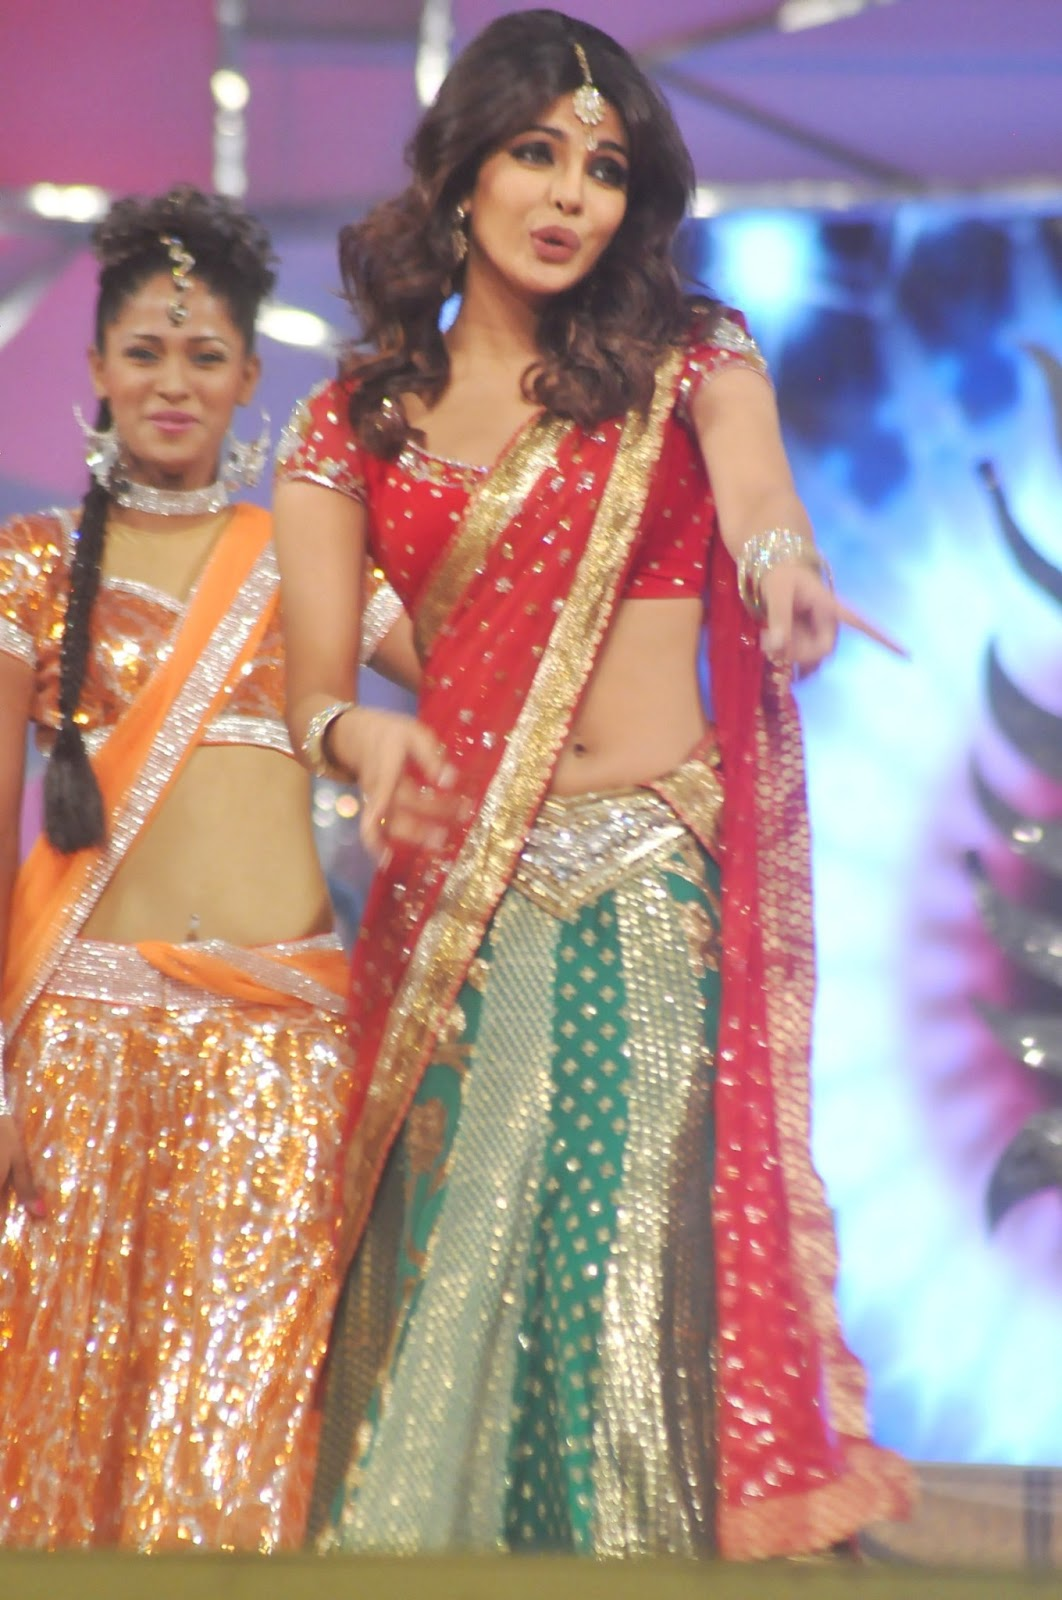 bollywood celebrities at mumbai police entertainment show